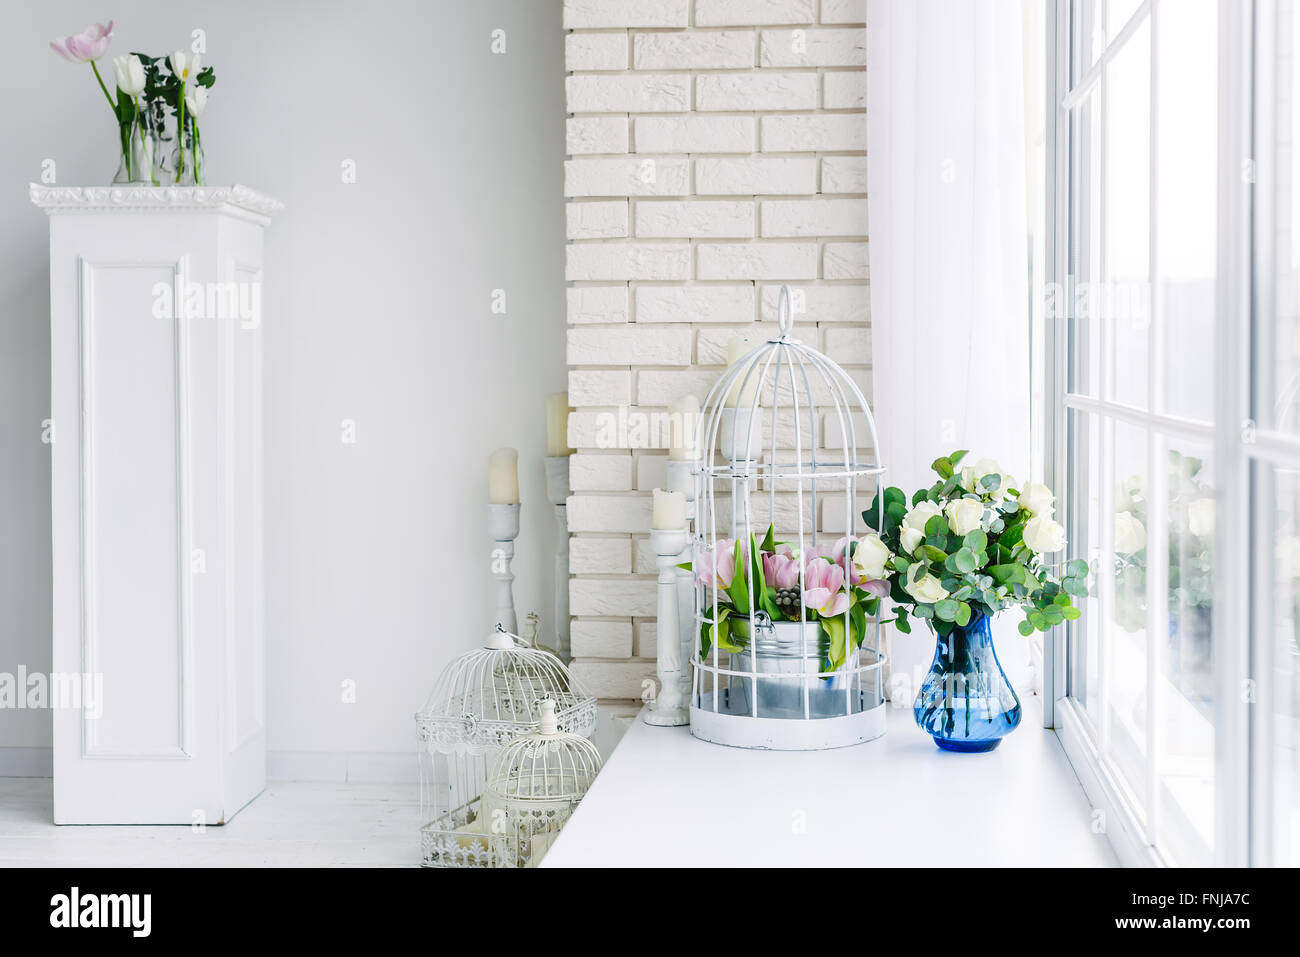 Flowers on the windowsill in studio - Stock Image